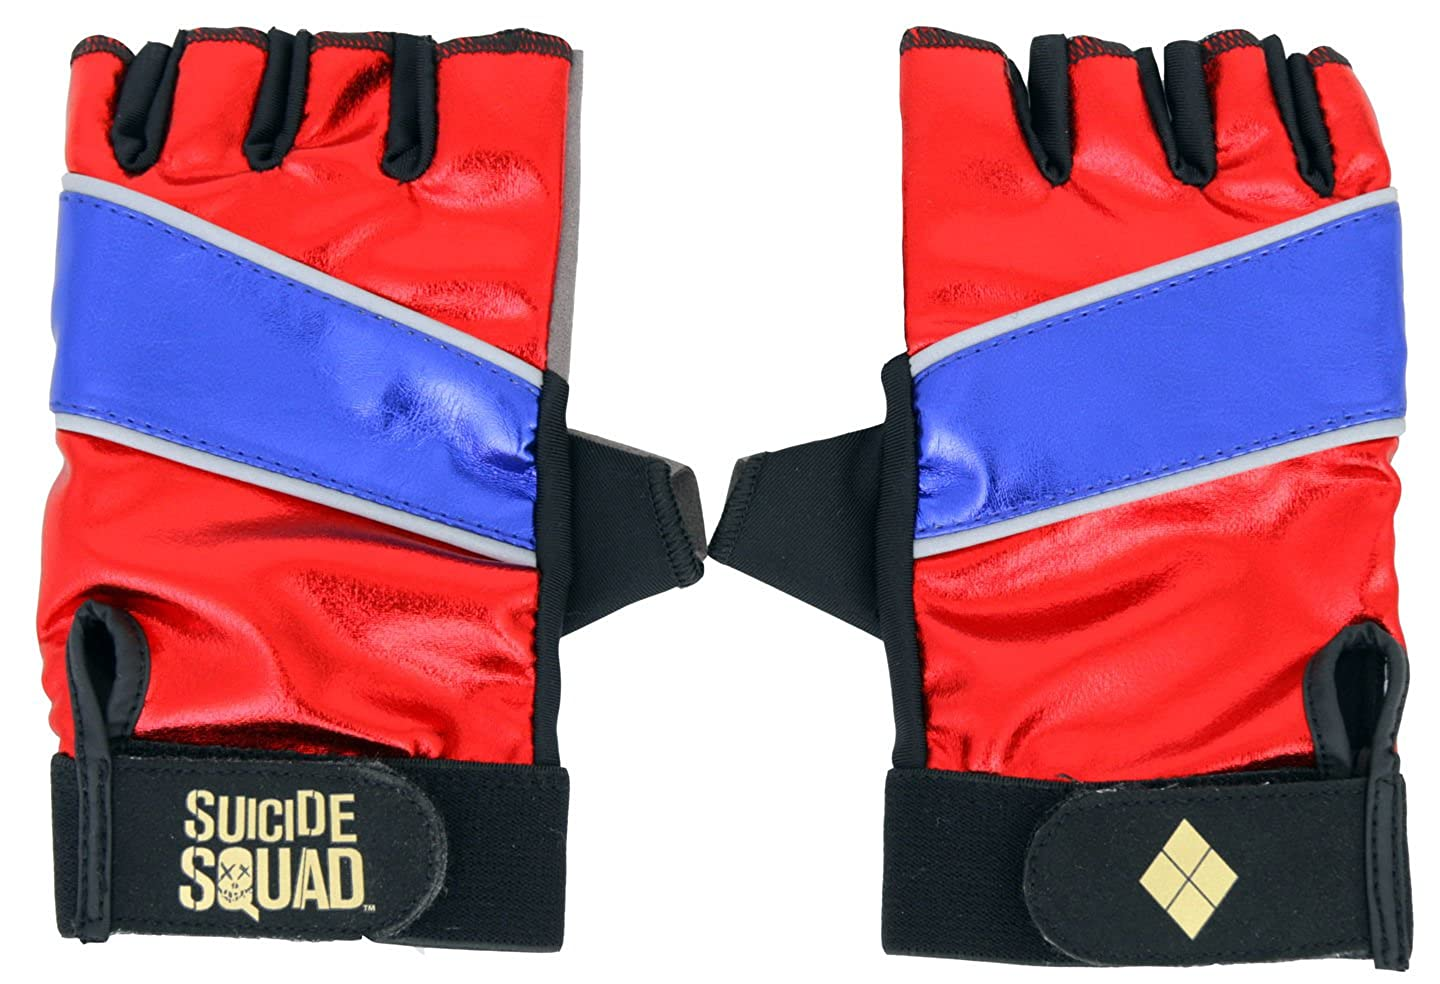 Suicide Squad Harley Quinn Cosplay Accessory Two Glove Set EMSQ6009TV